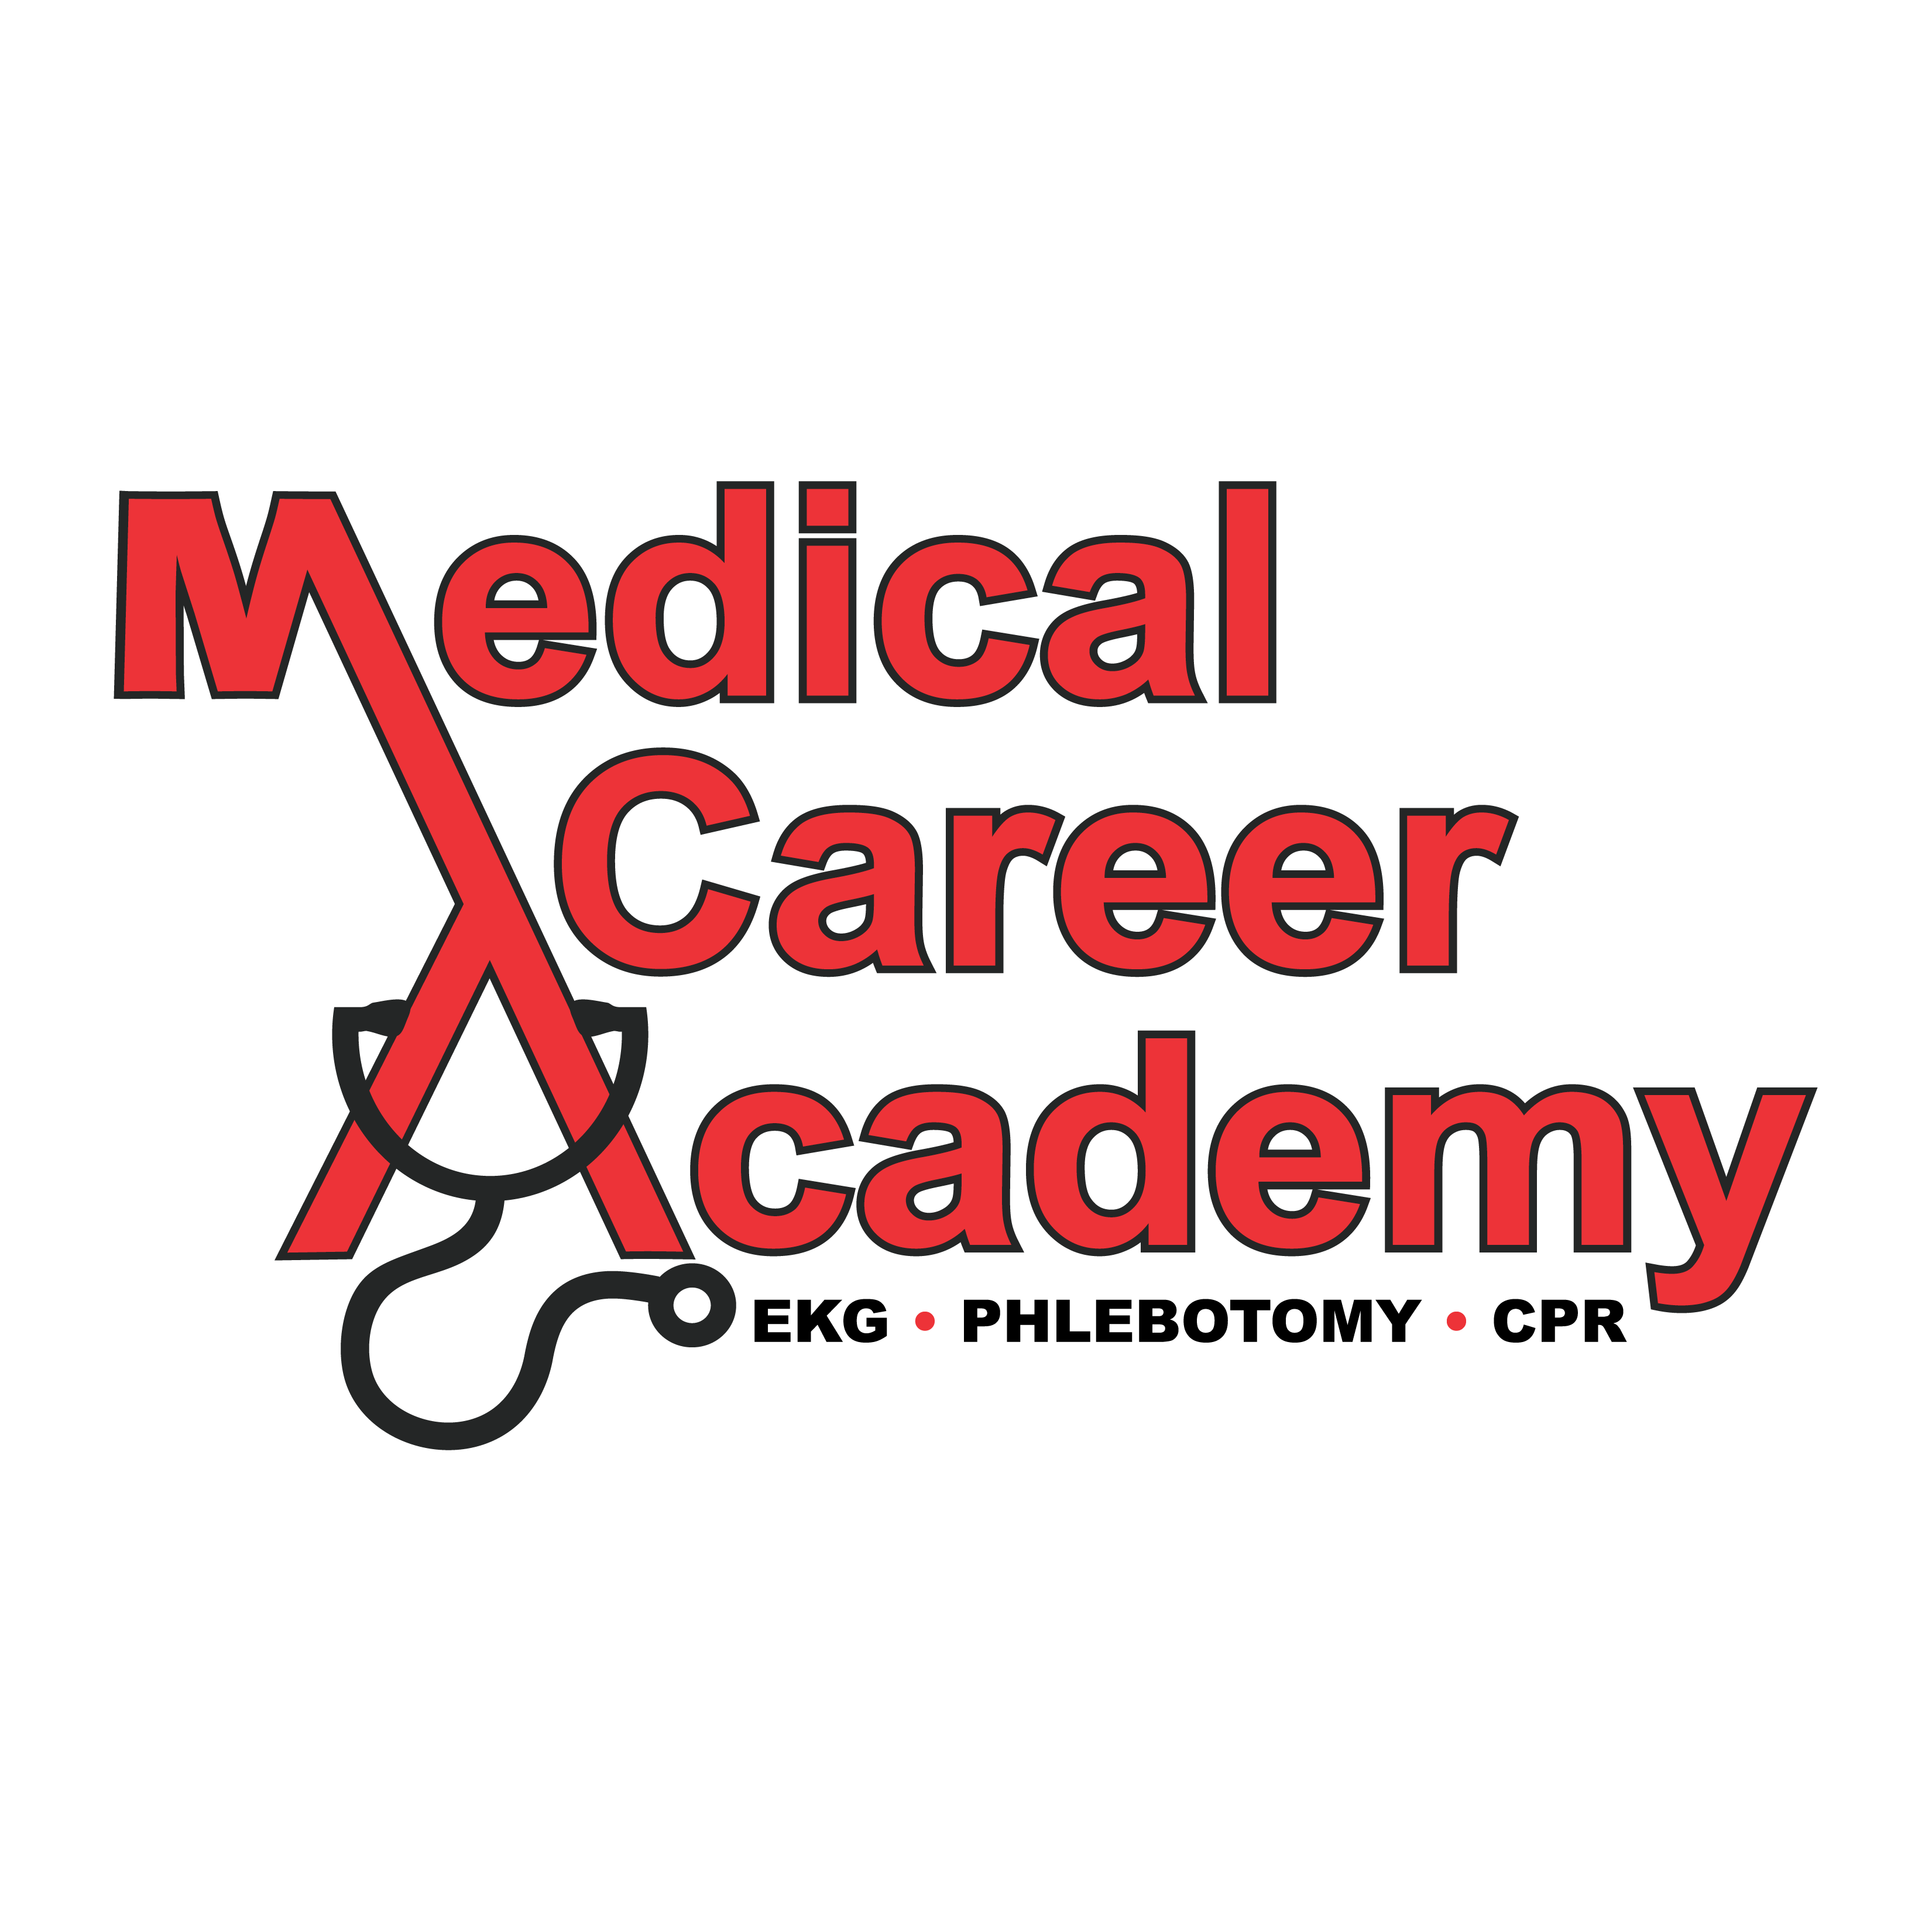 Medical career academy 9219 indianapolis blvd suite 302 highland hotels nearby 1betcityfo Image collections